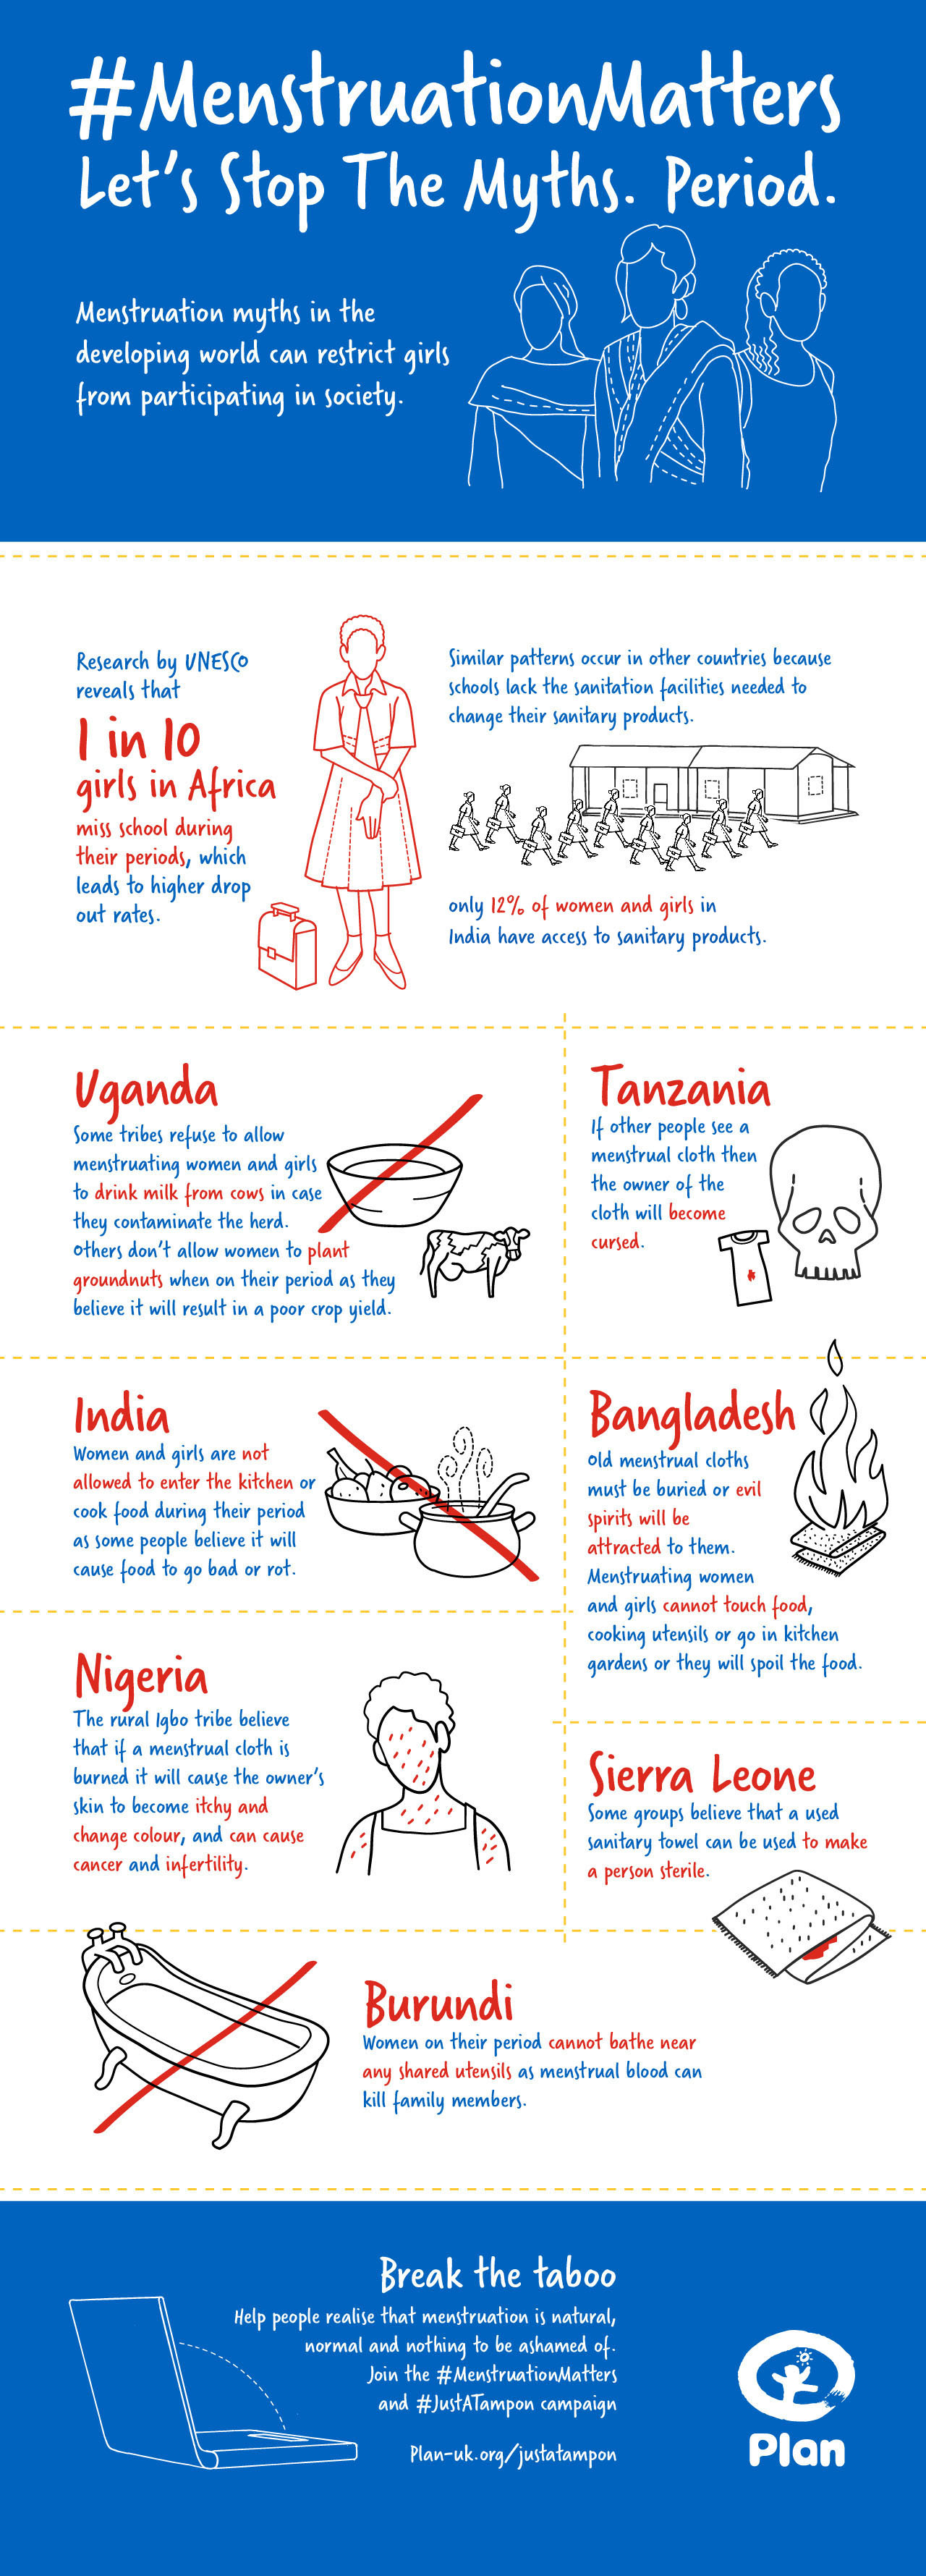 Menstruation myths infographic